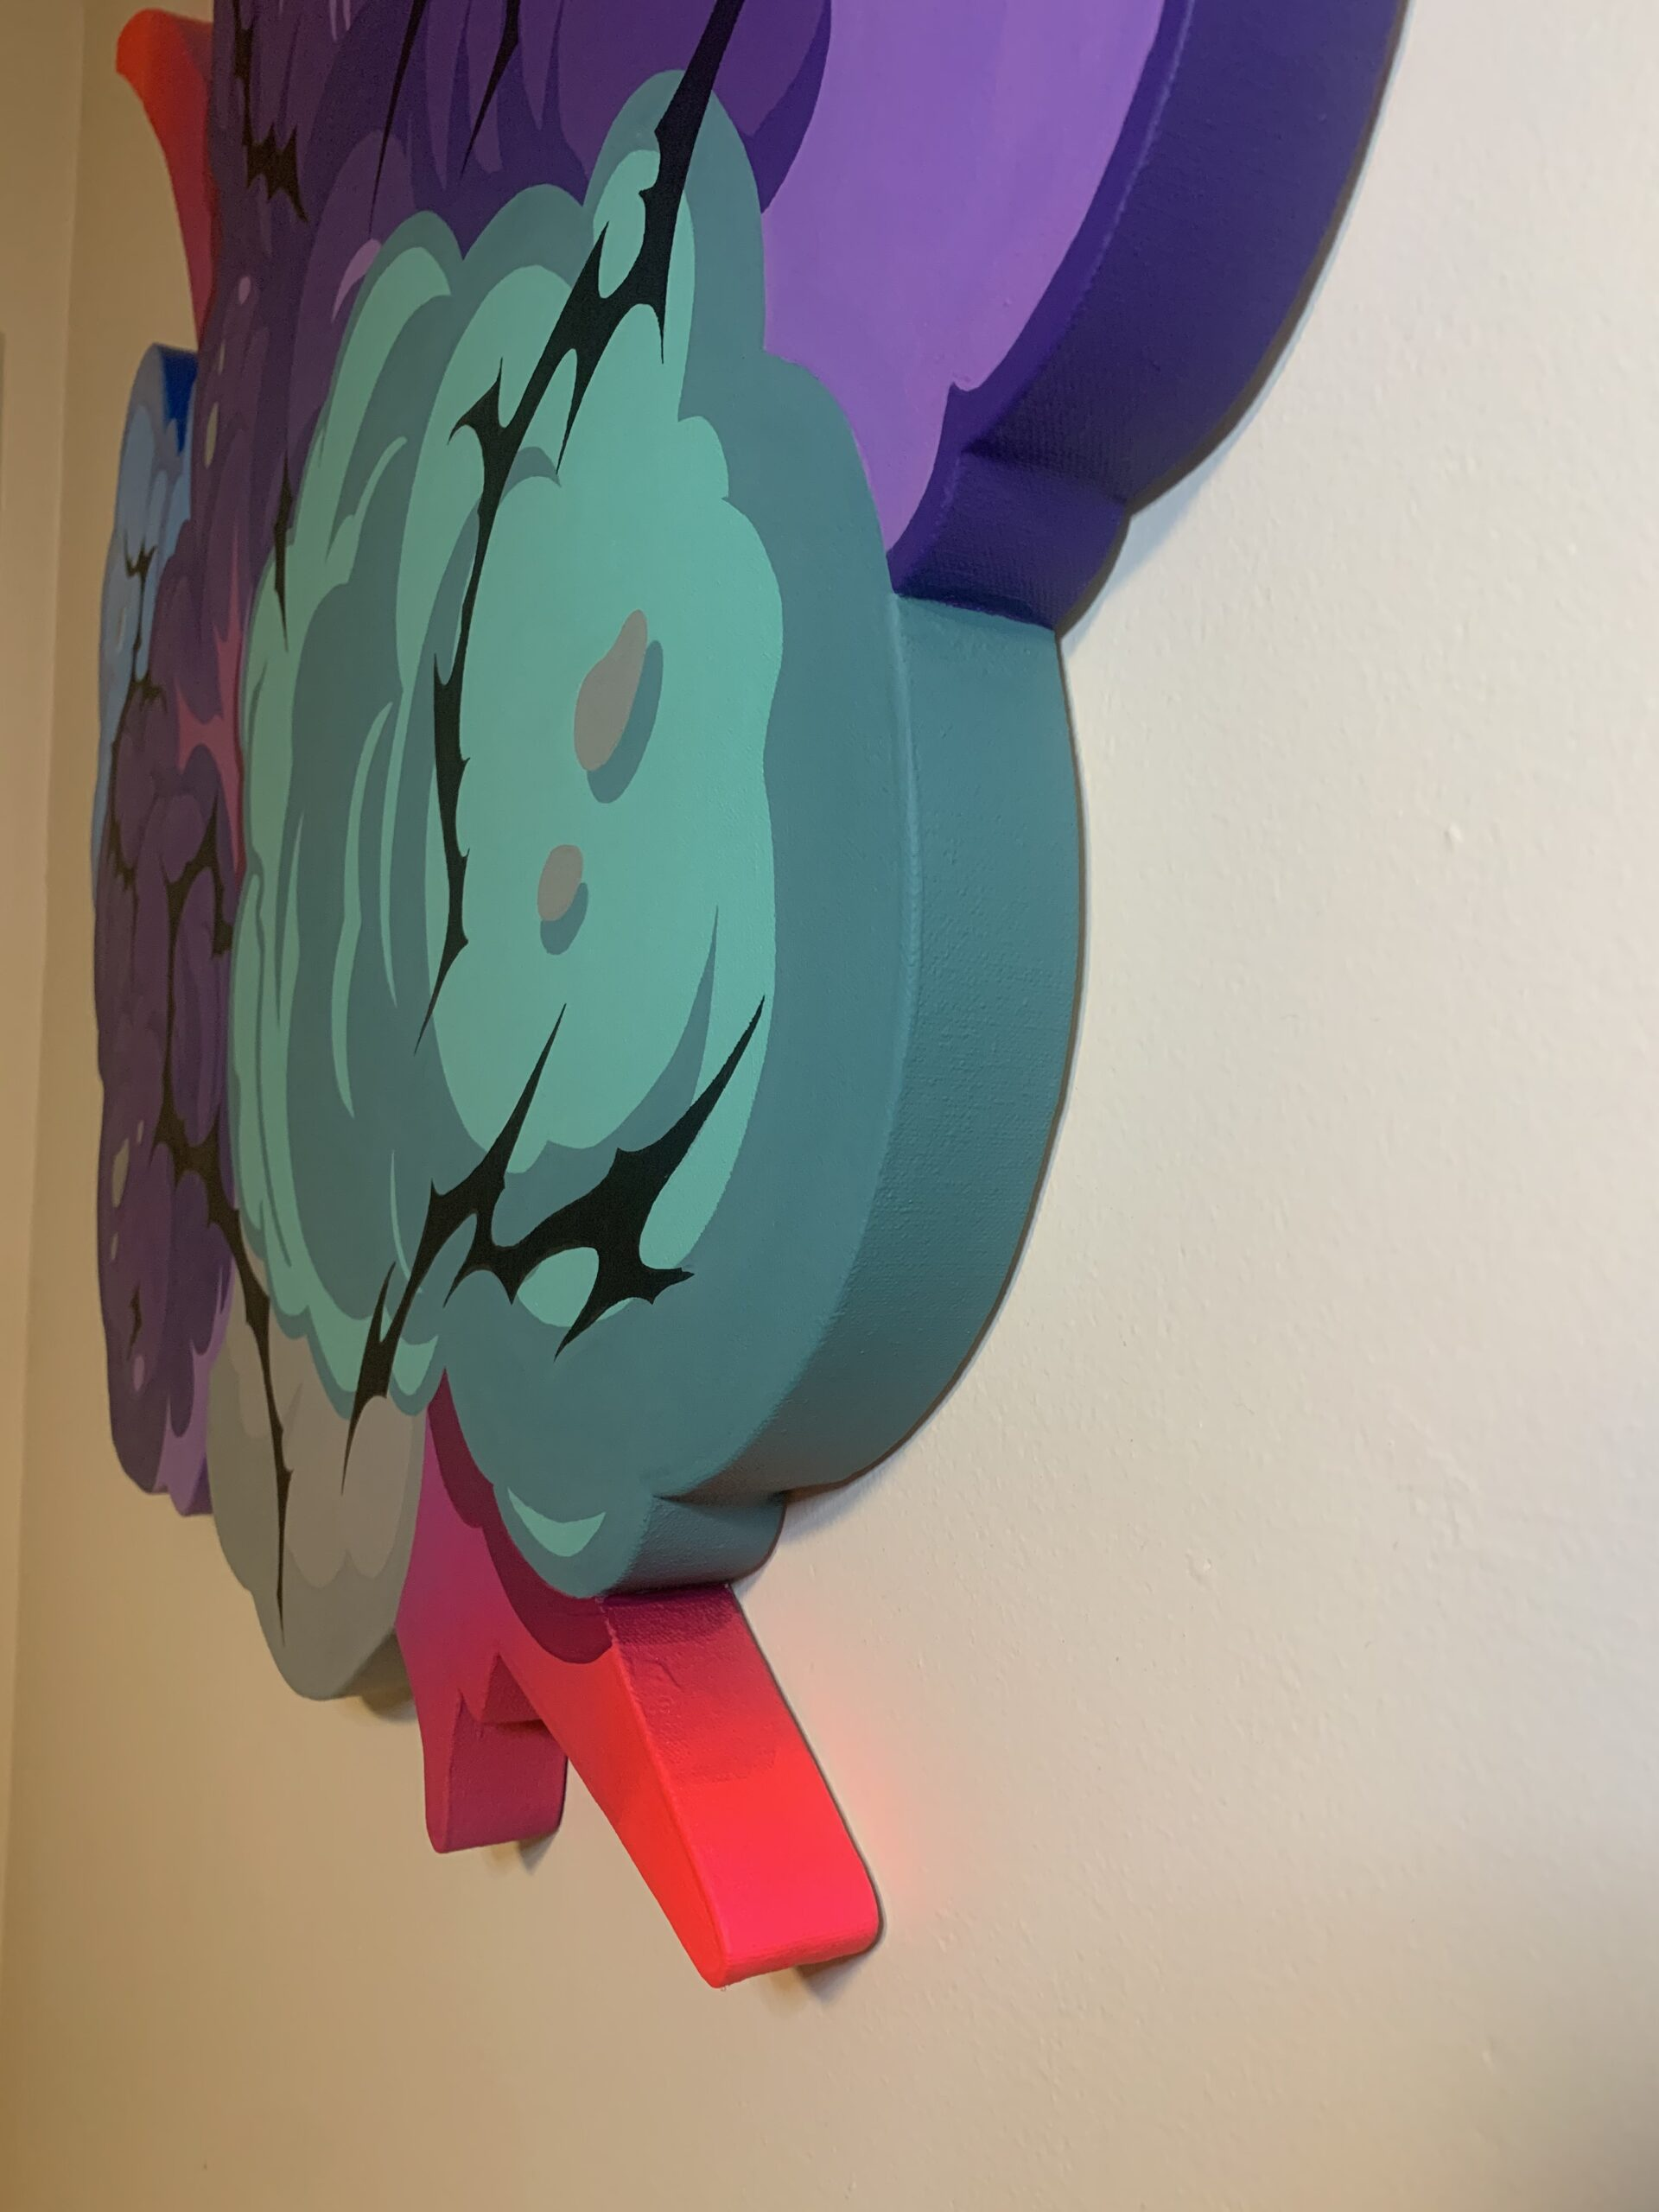 Implode by Nover. 3 1/2 Feet Tall Custom Shaped Canvas. 1 Of 1. All Acrylic Paint, 2019.